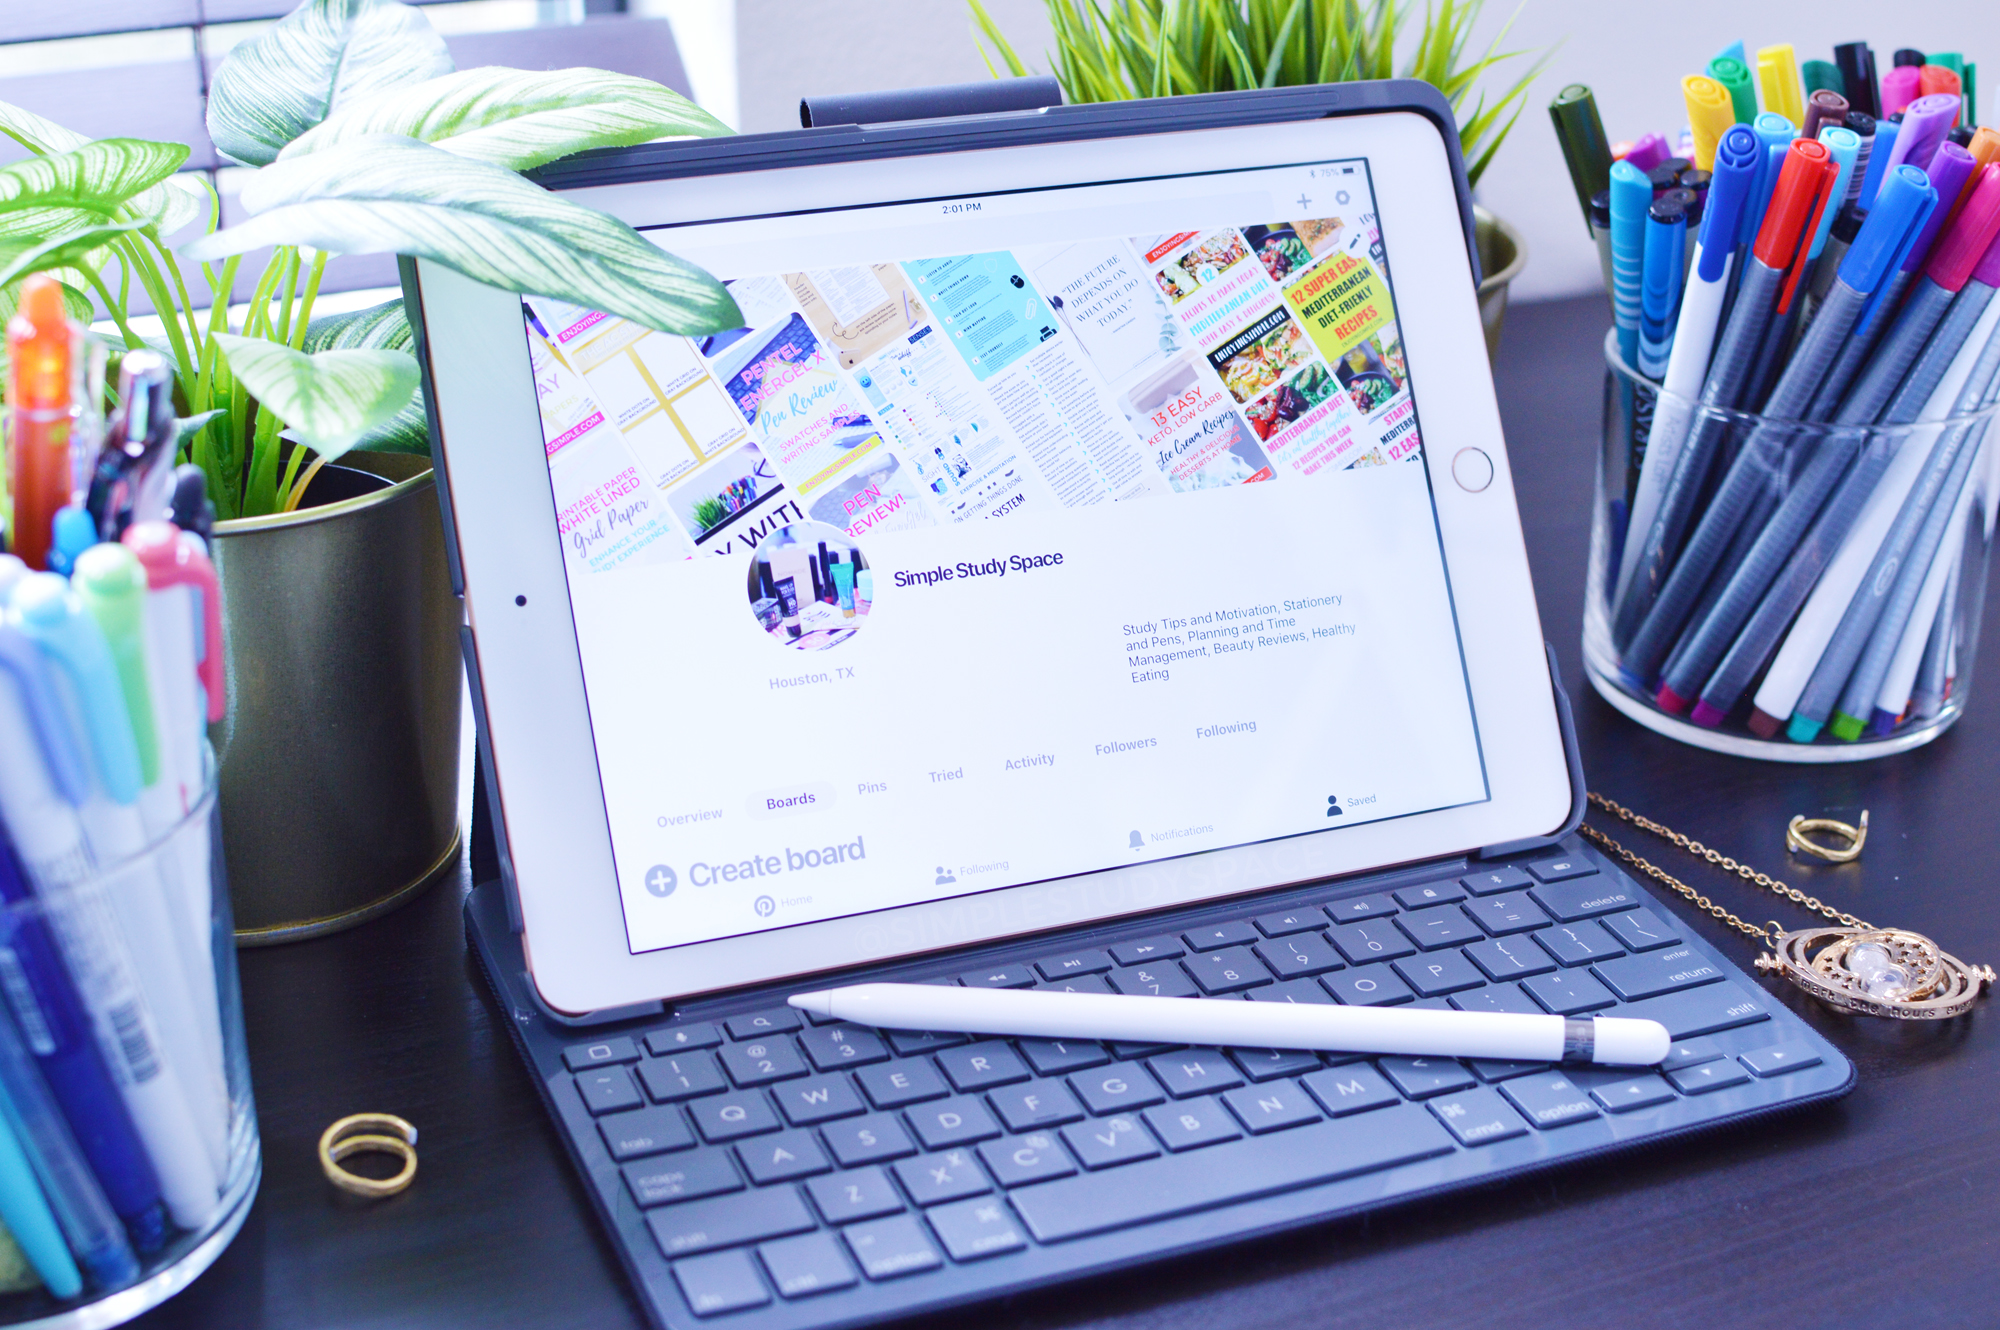 iPad, Apple Pencil and Logitech keyboard from Apple.